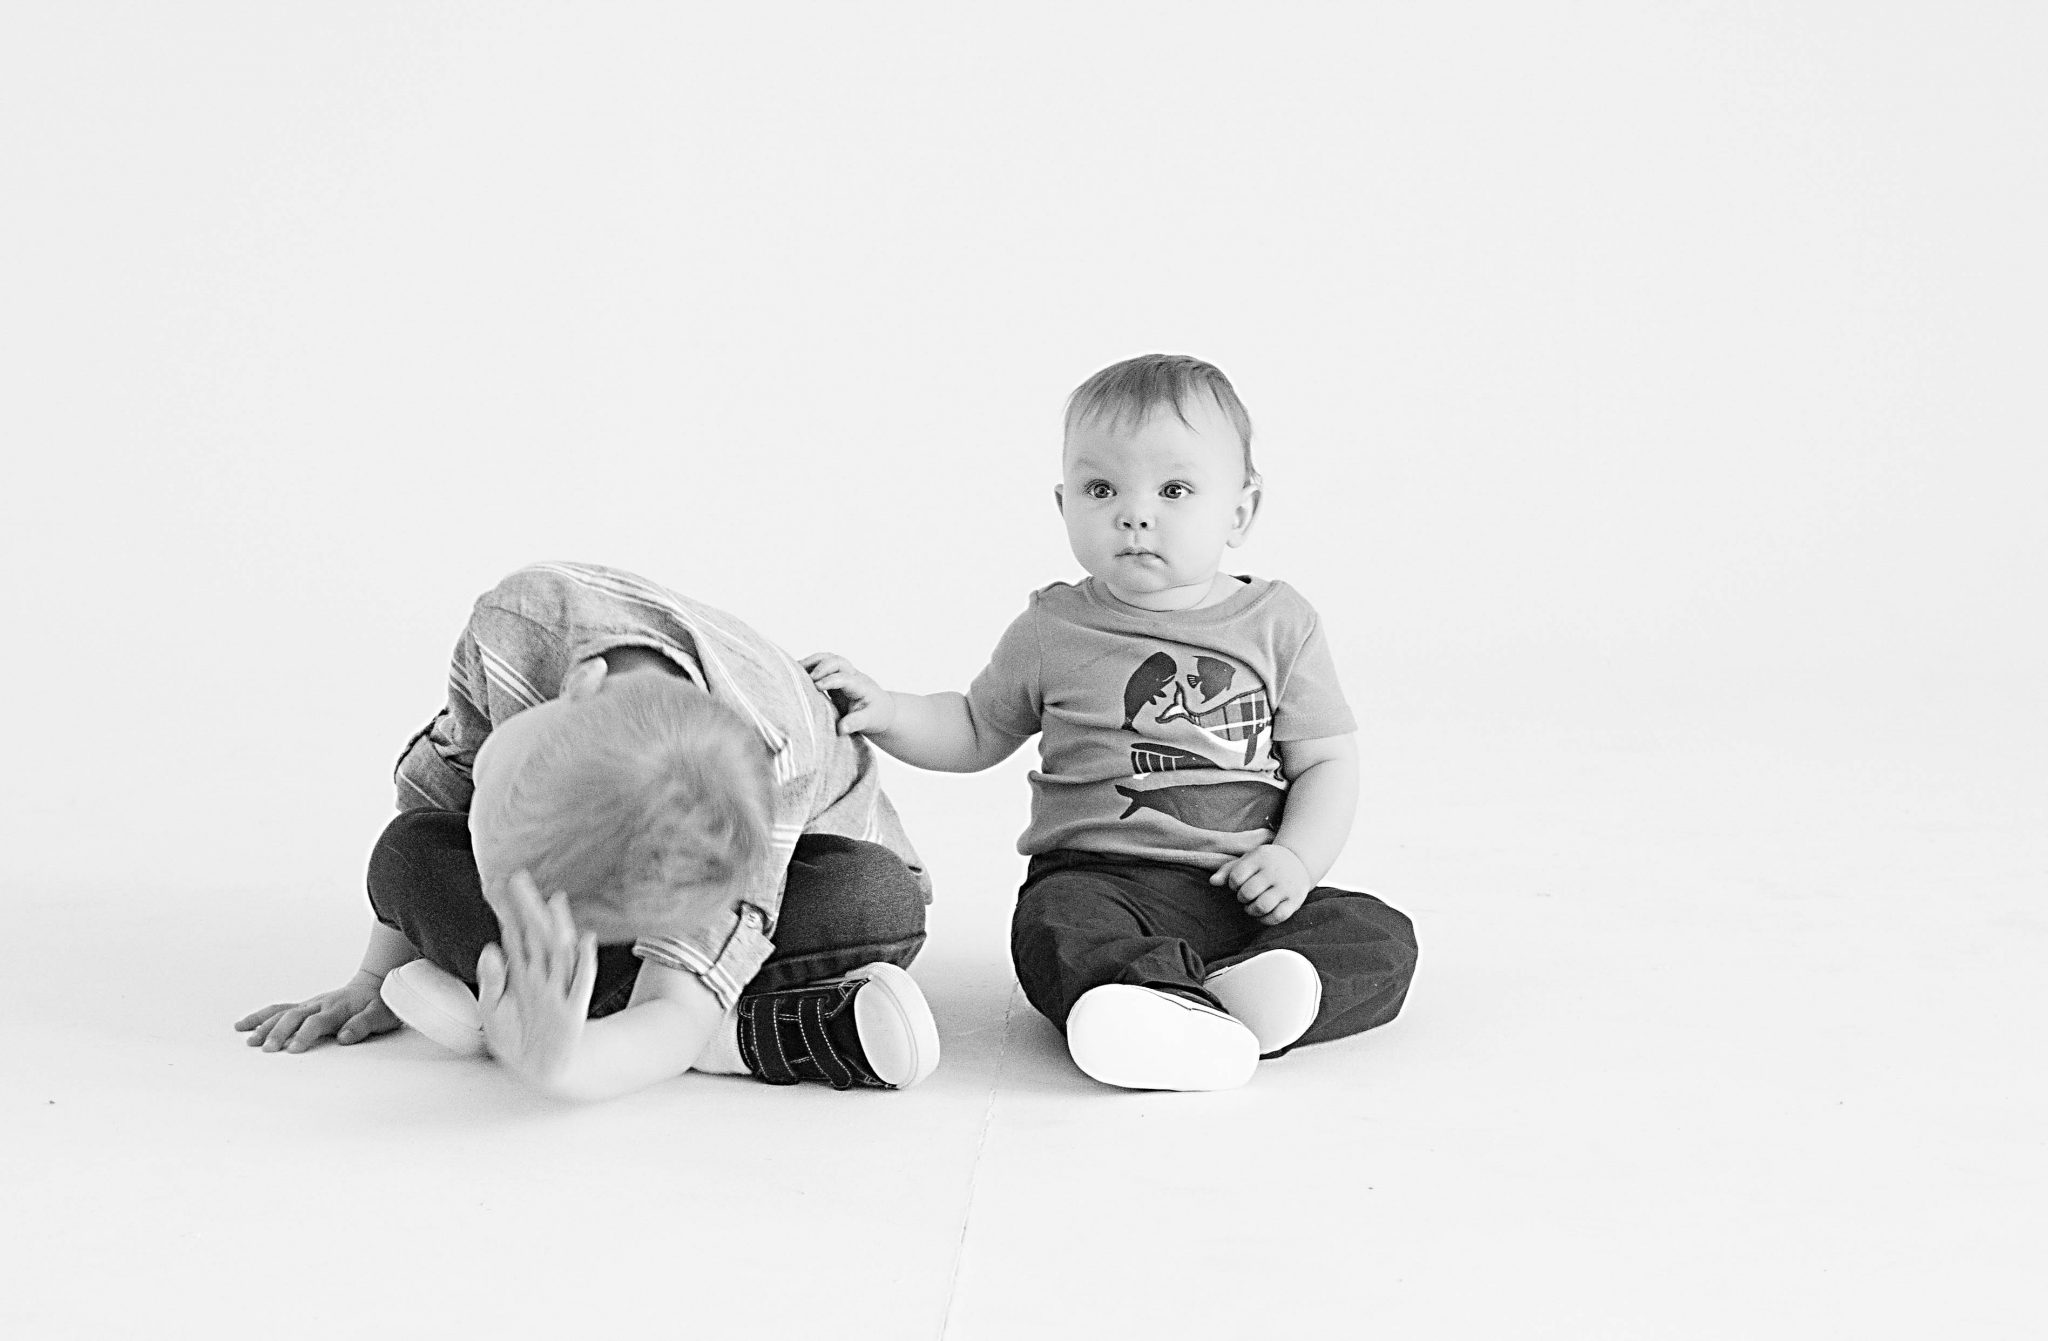 brother leaning over himself laughing, young brother patting his back, picture in black and white